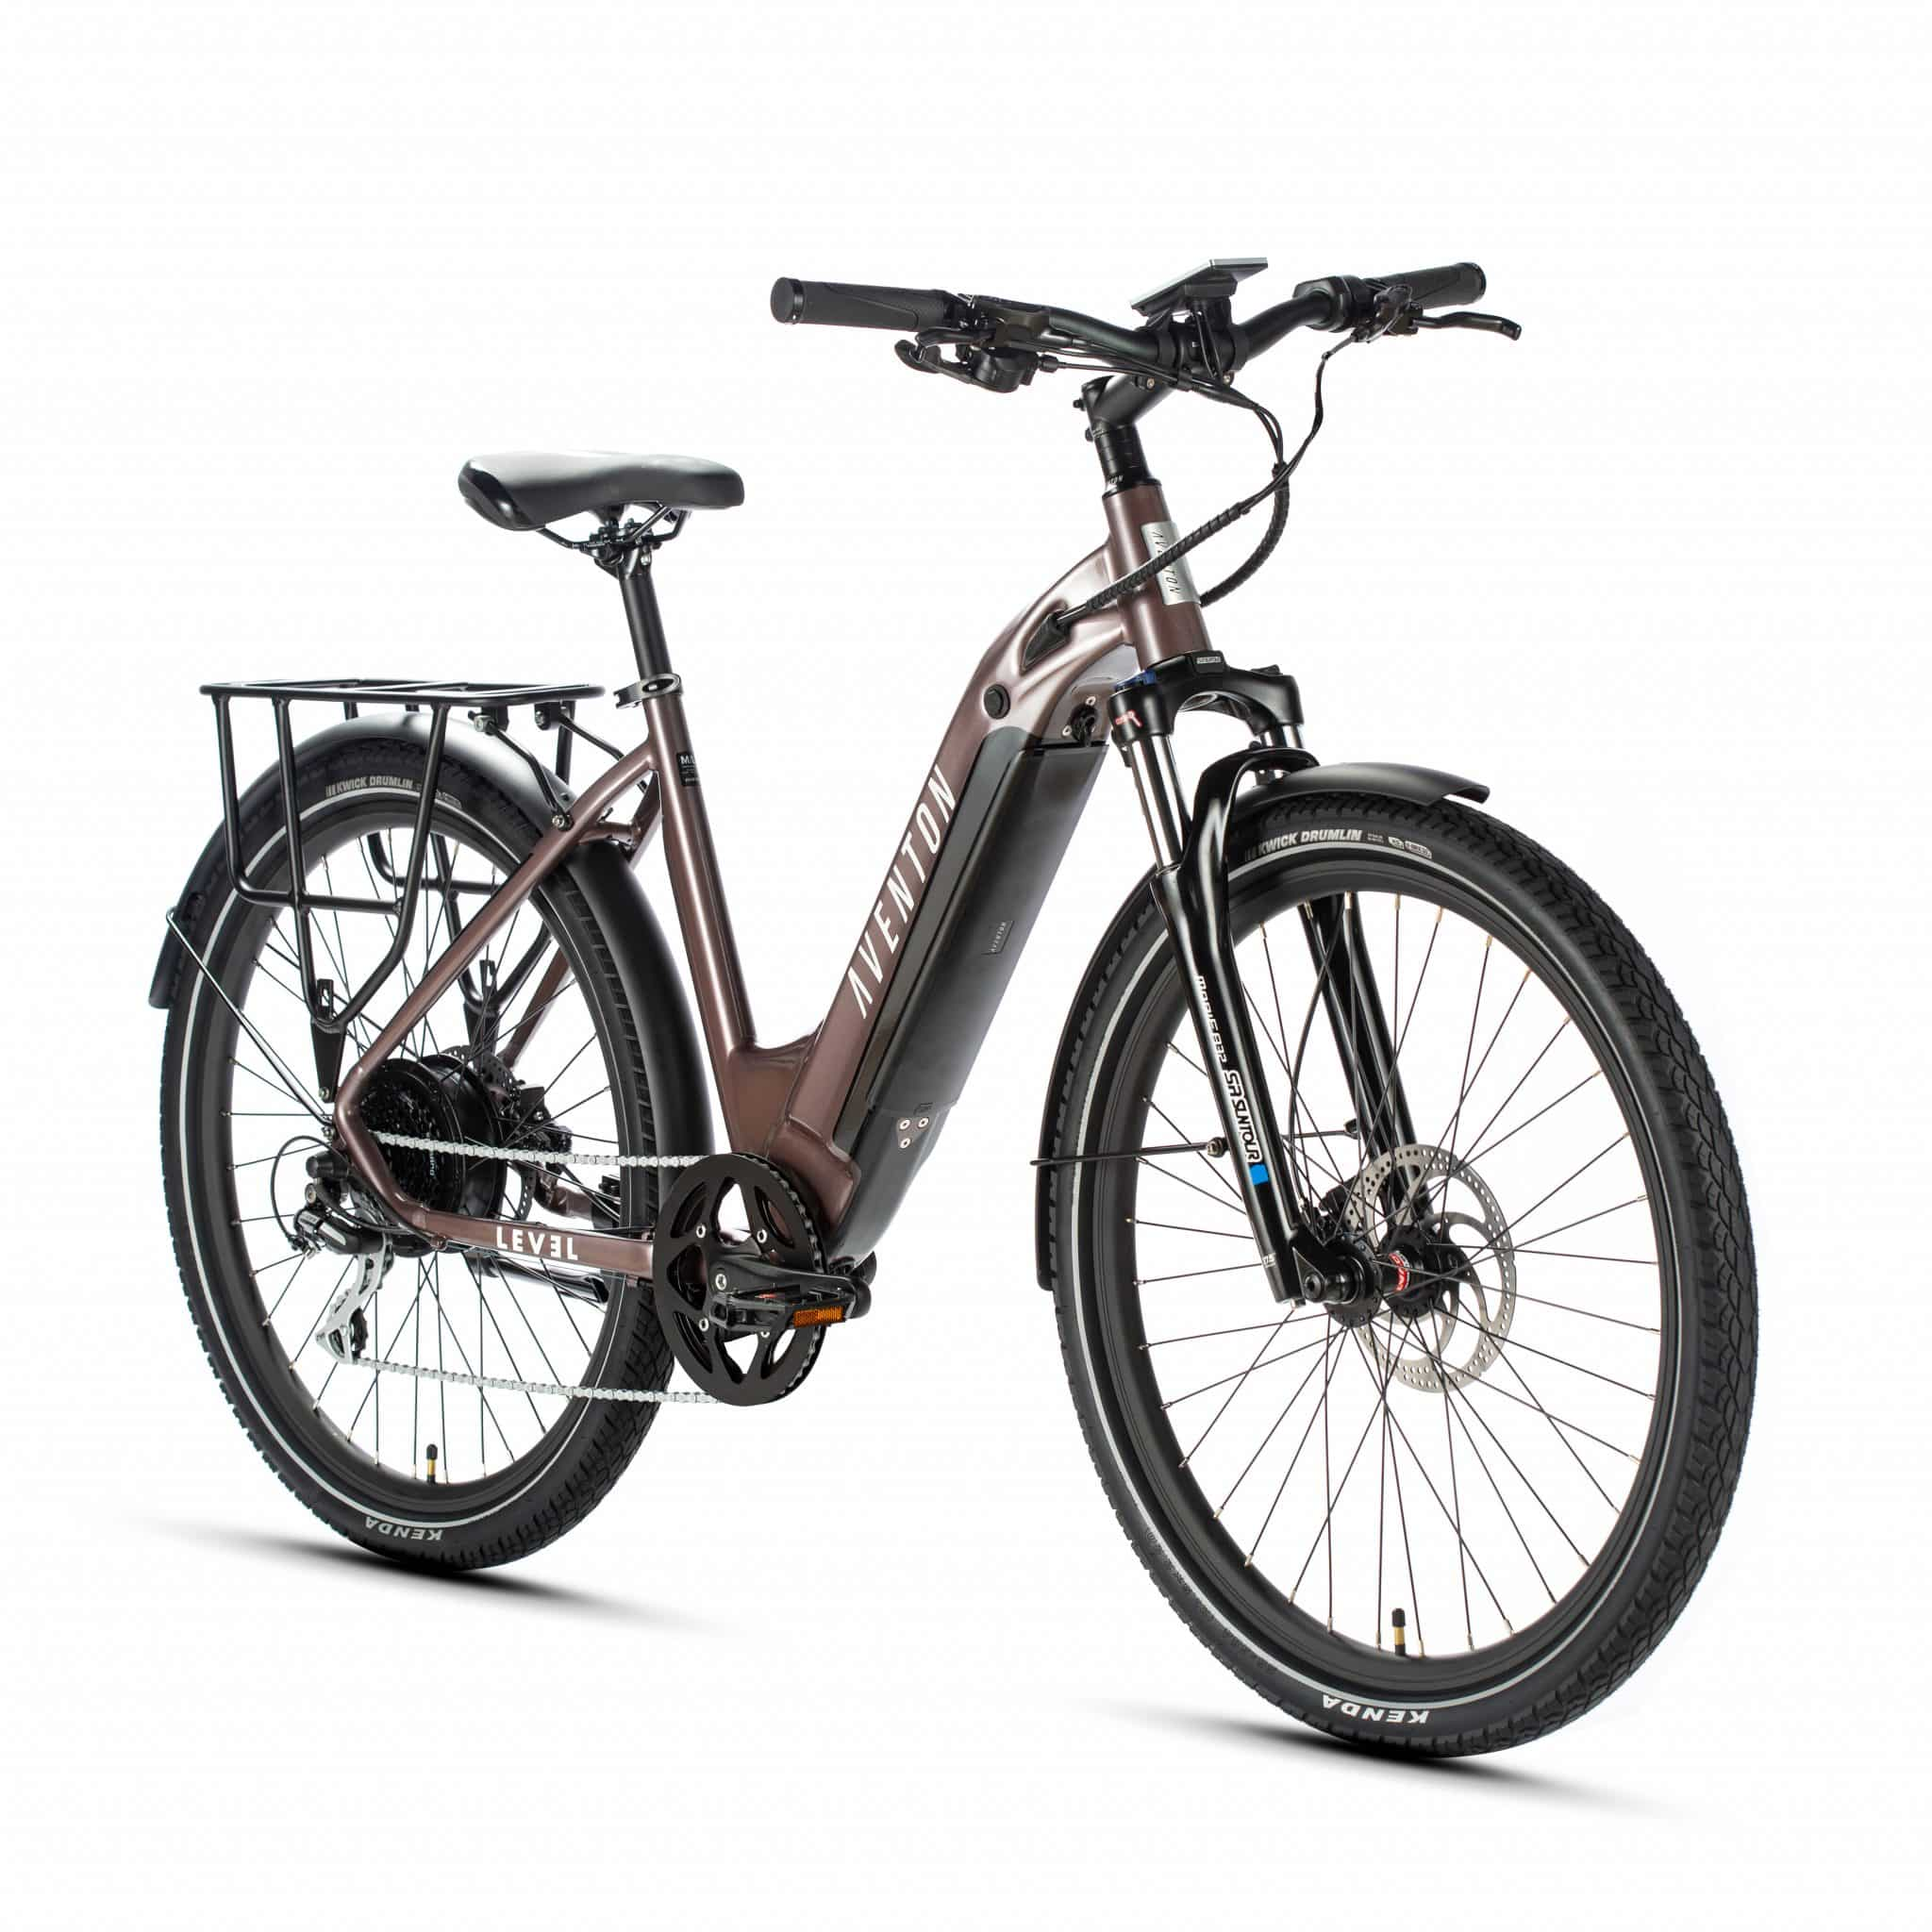 Aventon Announces New Step-Through Version of Level | Electric Bike Action